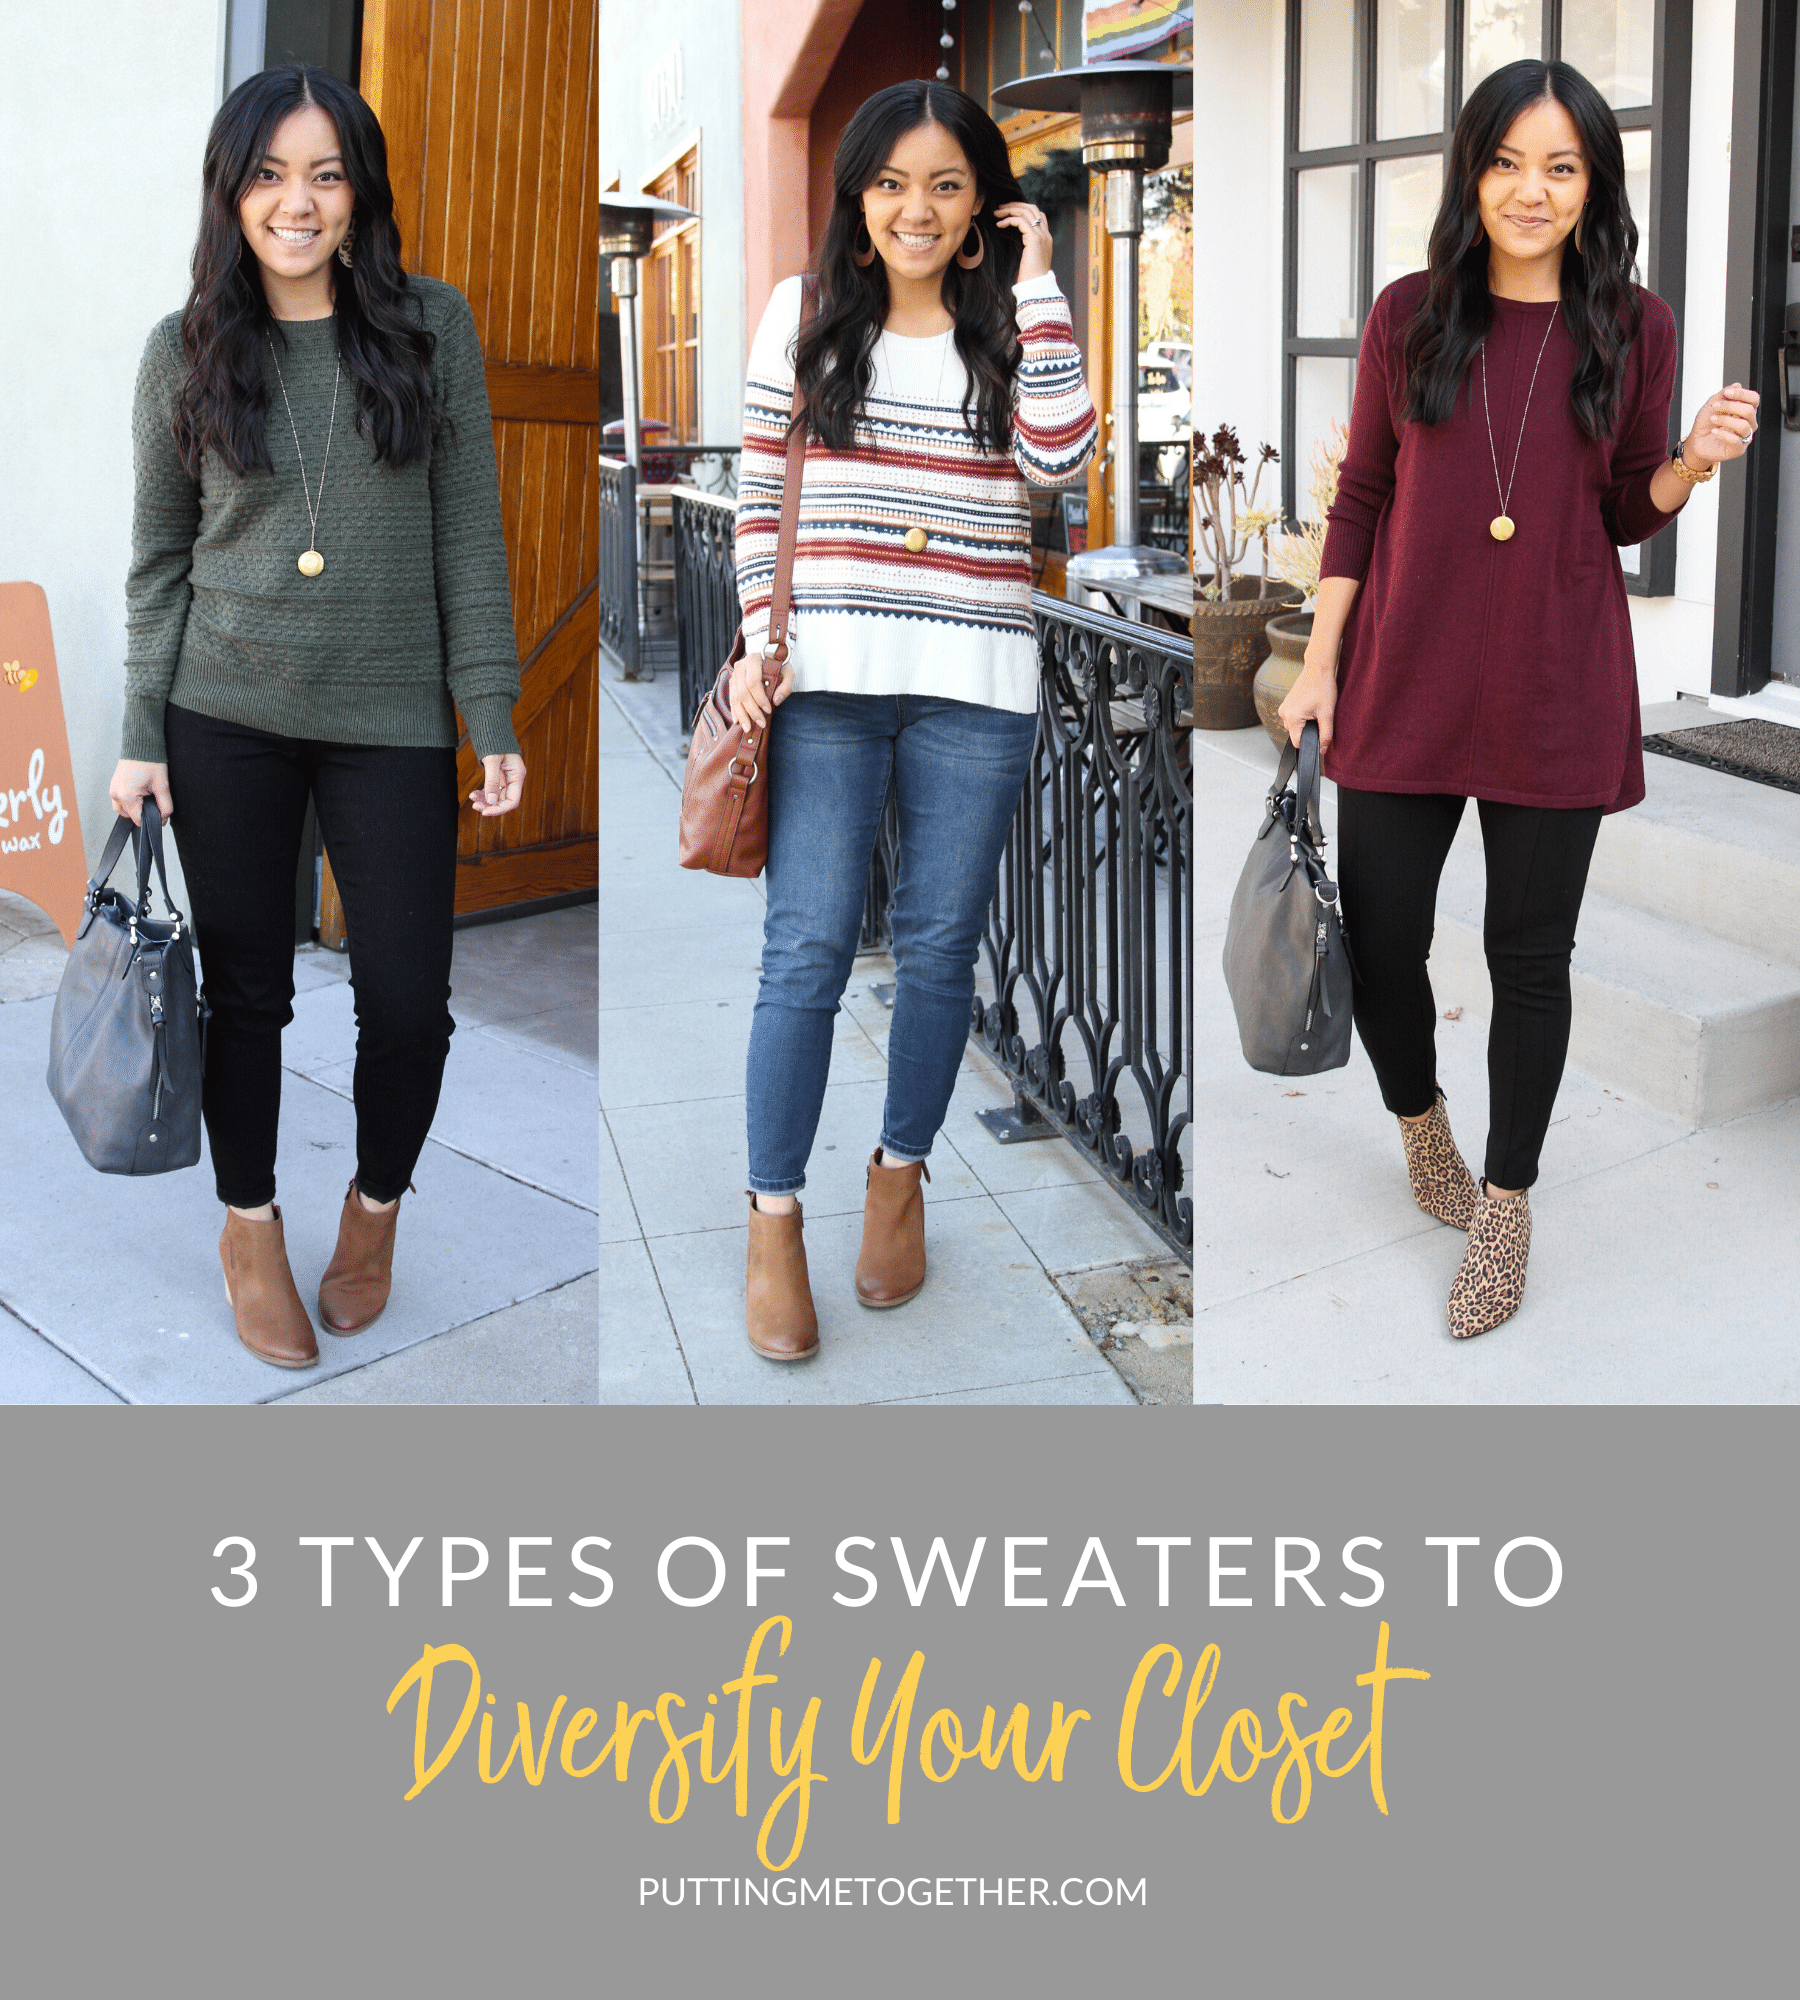 3 Types of Sweaters to Diversify Your Closet